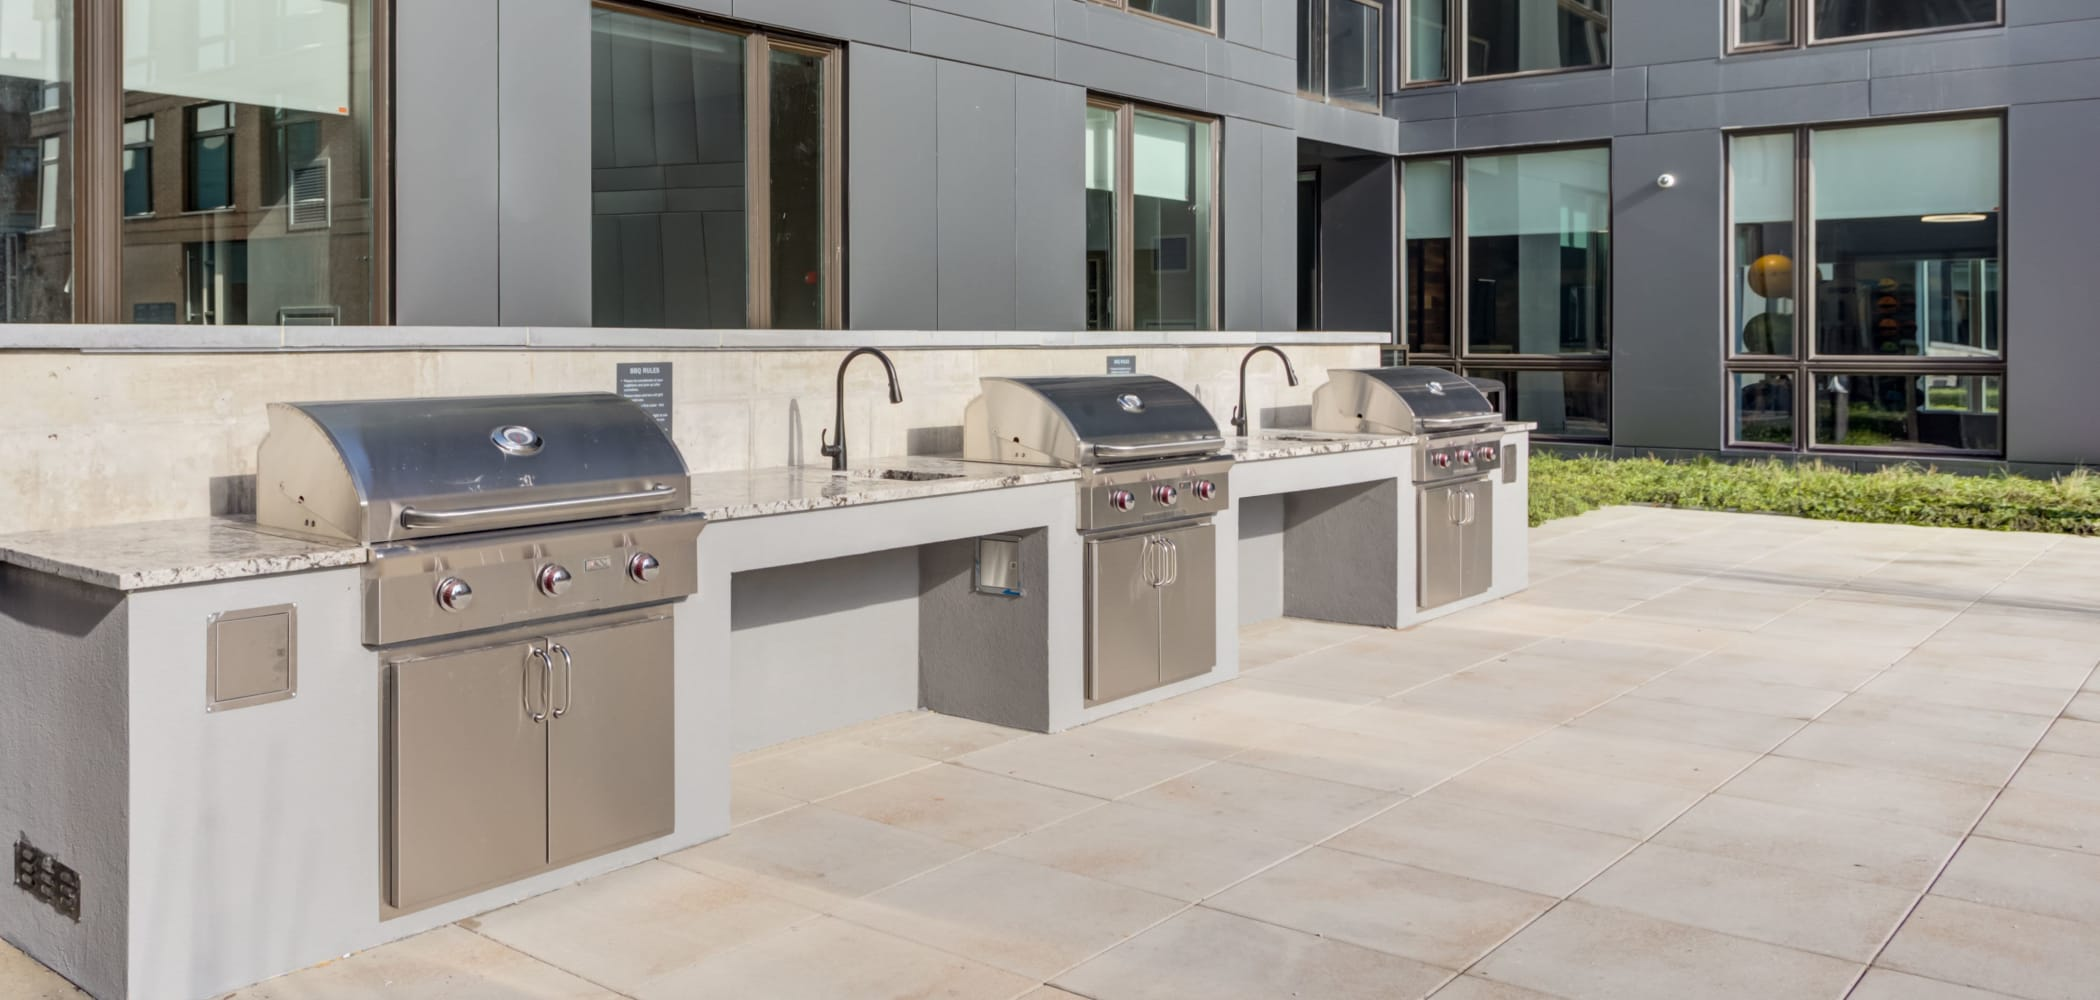 Outdoor grilling stations at The Link Evanston in Evanston, Illinois